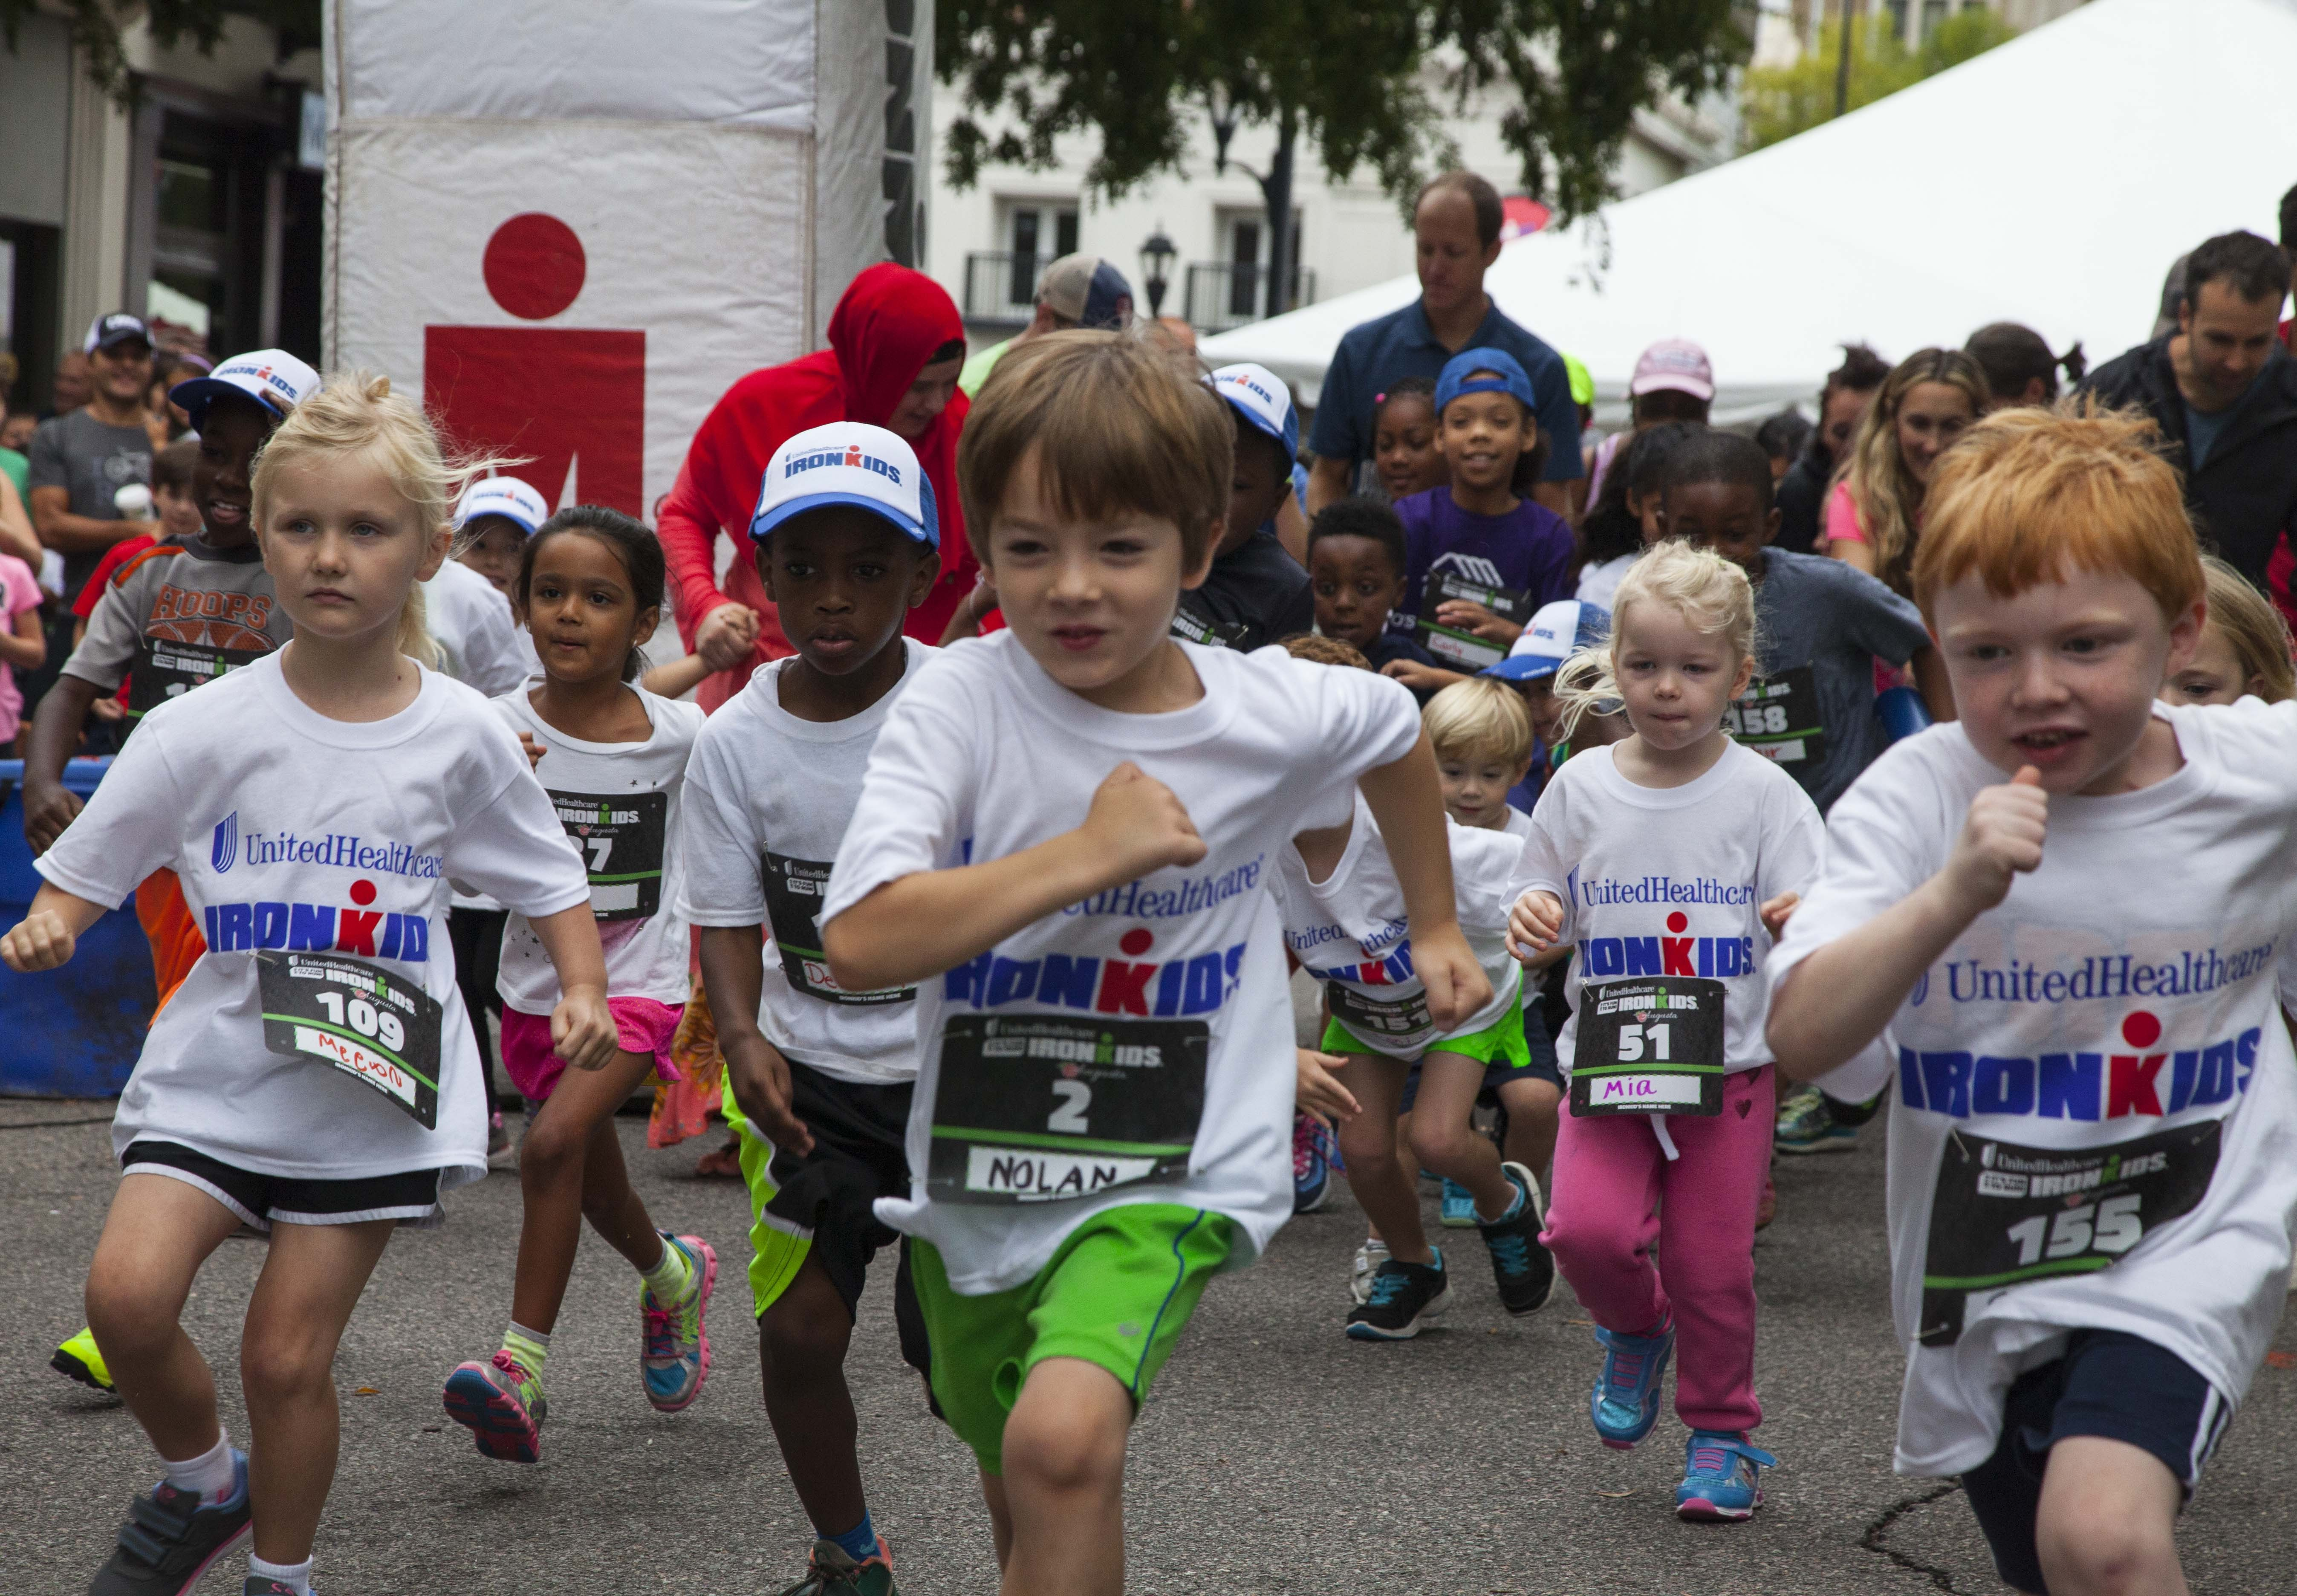 IRONKIDS's 'Augusta Fun Run' Supported By The UnitedHealthcare To Introduces A New Push Towards Healthy Life-Style